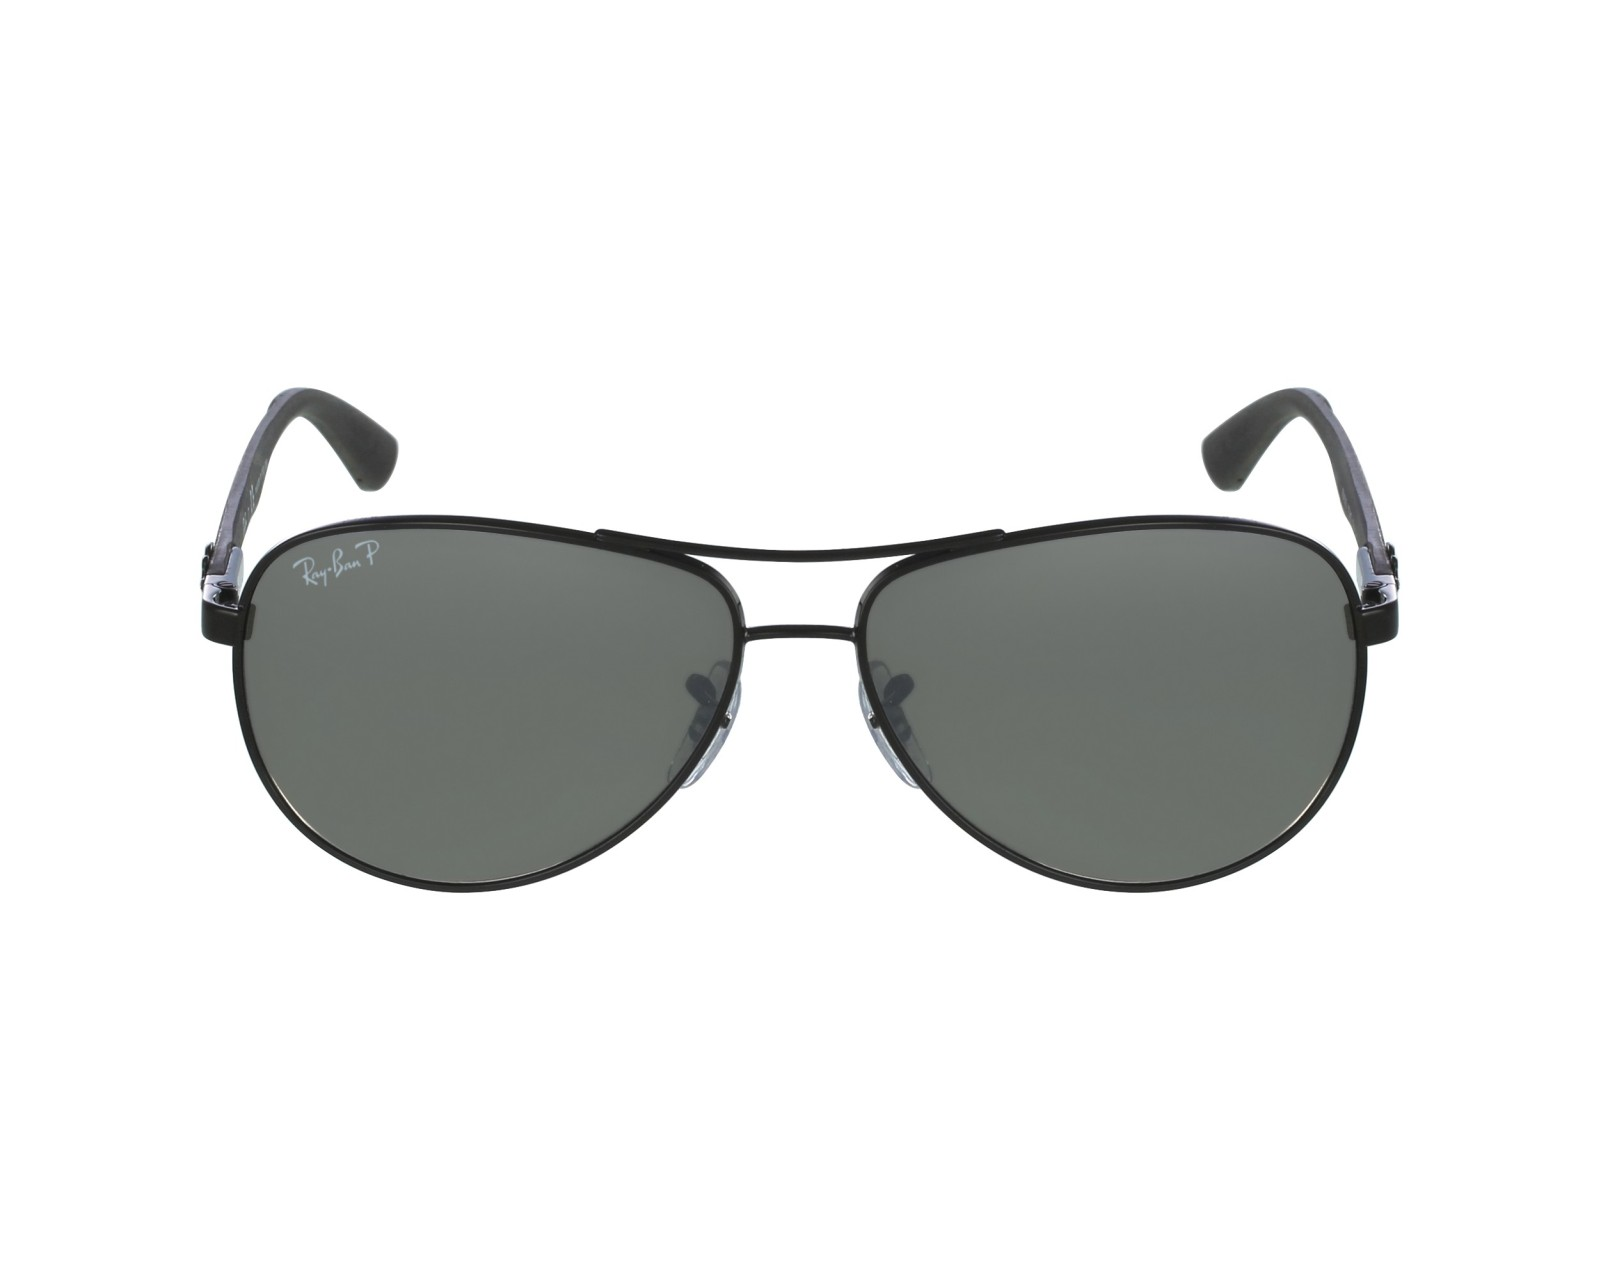 ac9df00b75a356 Sunglasses Ray-Ban RB-8313 002 K7 58-13 Black Carbon profile